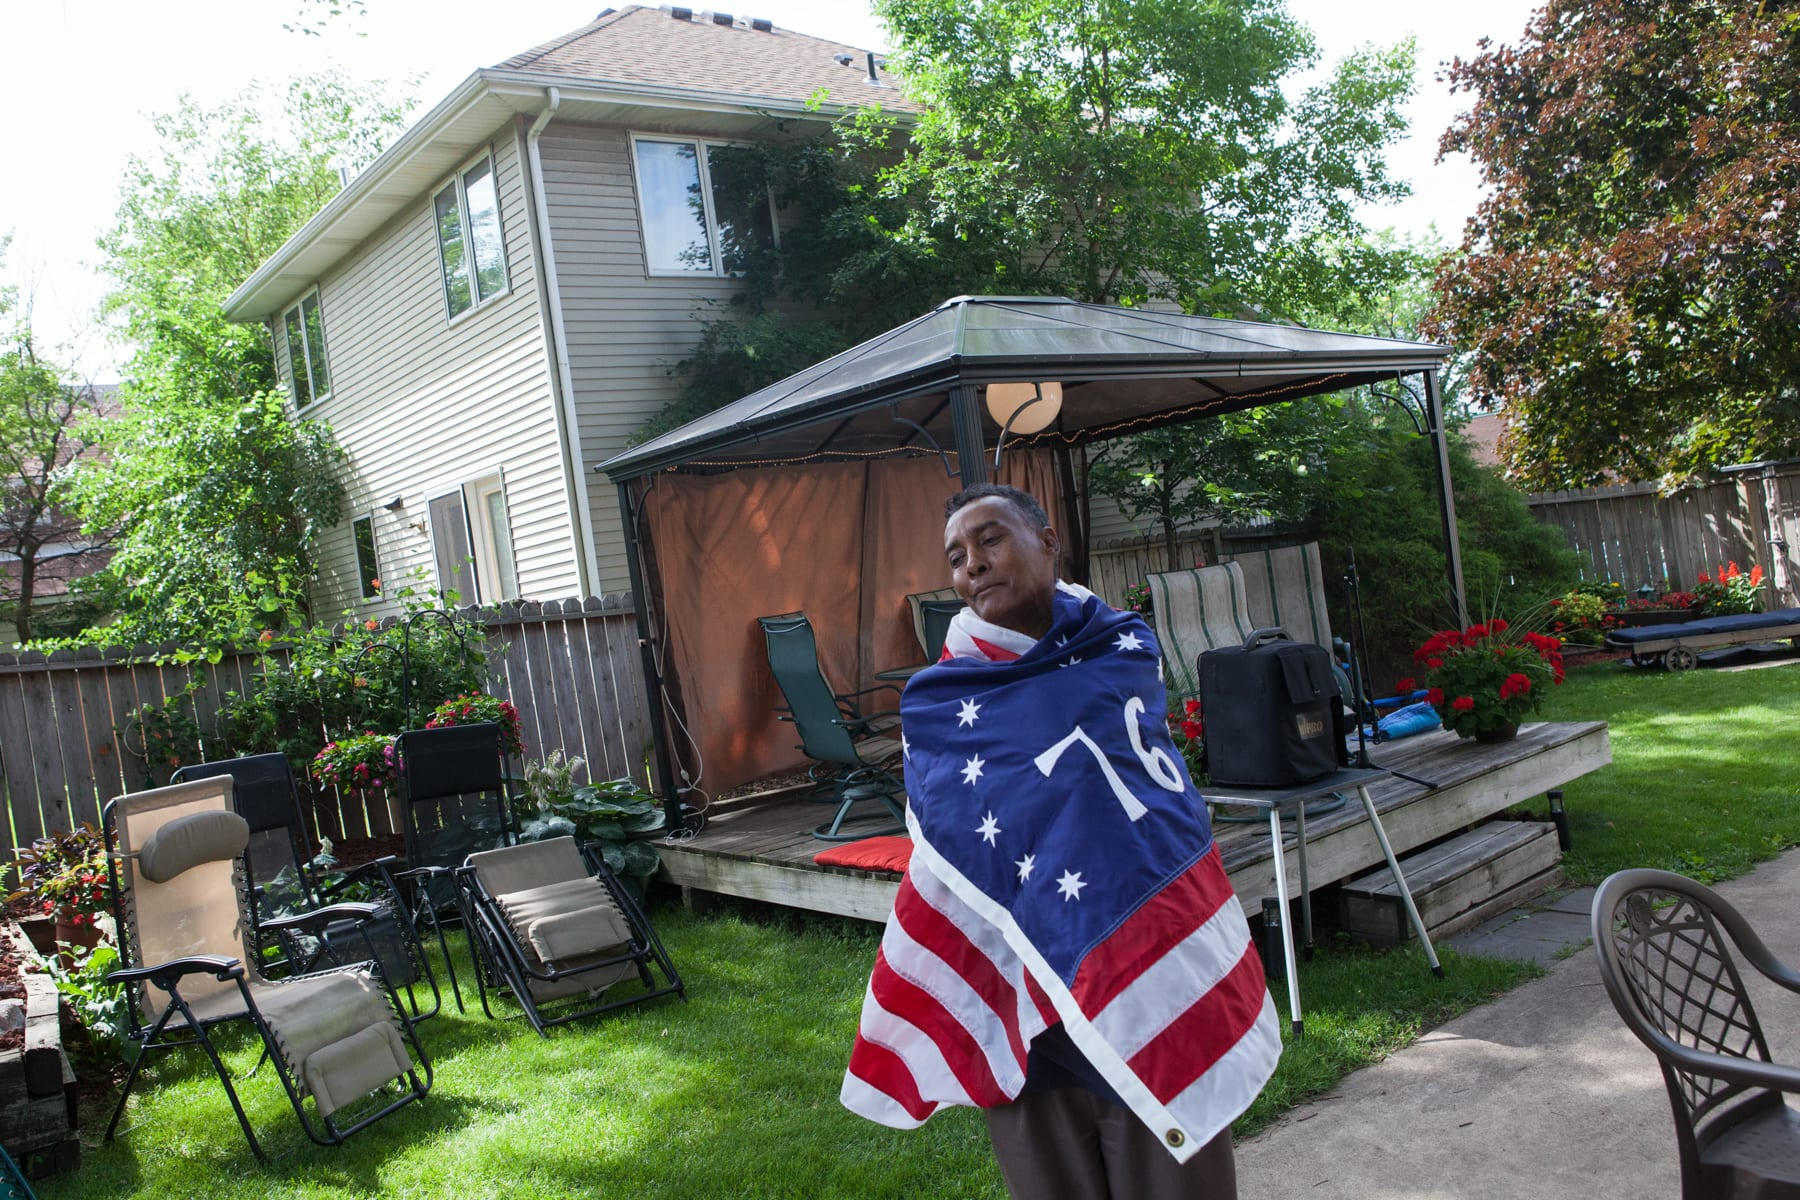 Osman Omar, who says he will run for president of Somalia for the second time in 2016, wraps himself in an American flag while preparing for a community dinner to break the fast at sundown during the holy month of Ramadan. The event drew dozens of people, including Somali community leaders and the Minnesota state auditor Rebecca Otto © Arthur Nazaryan